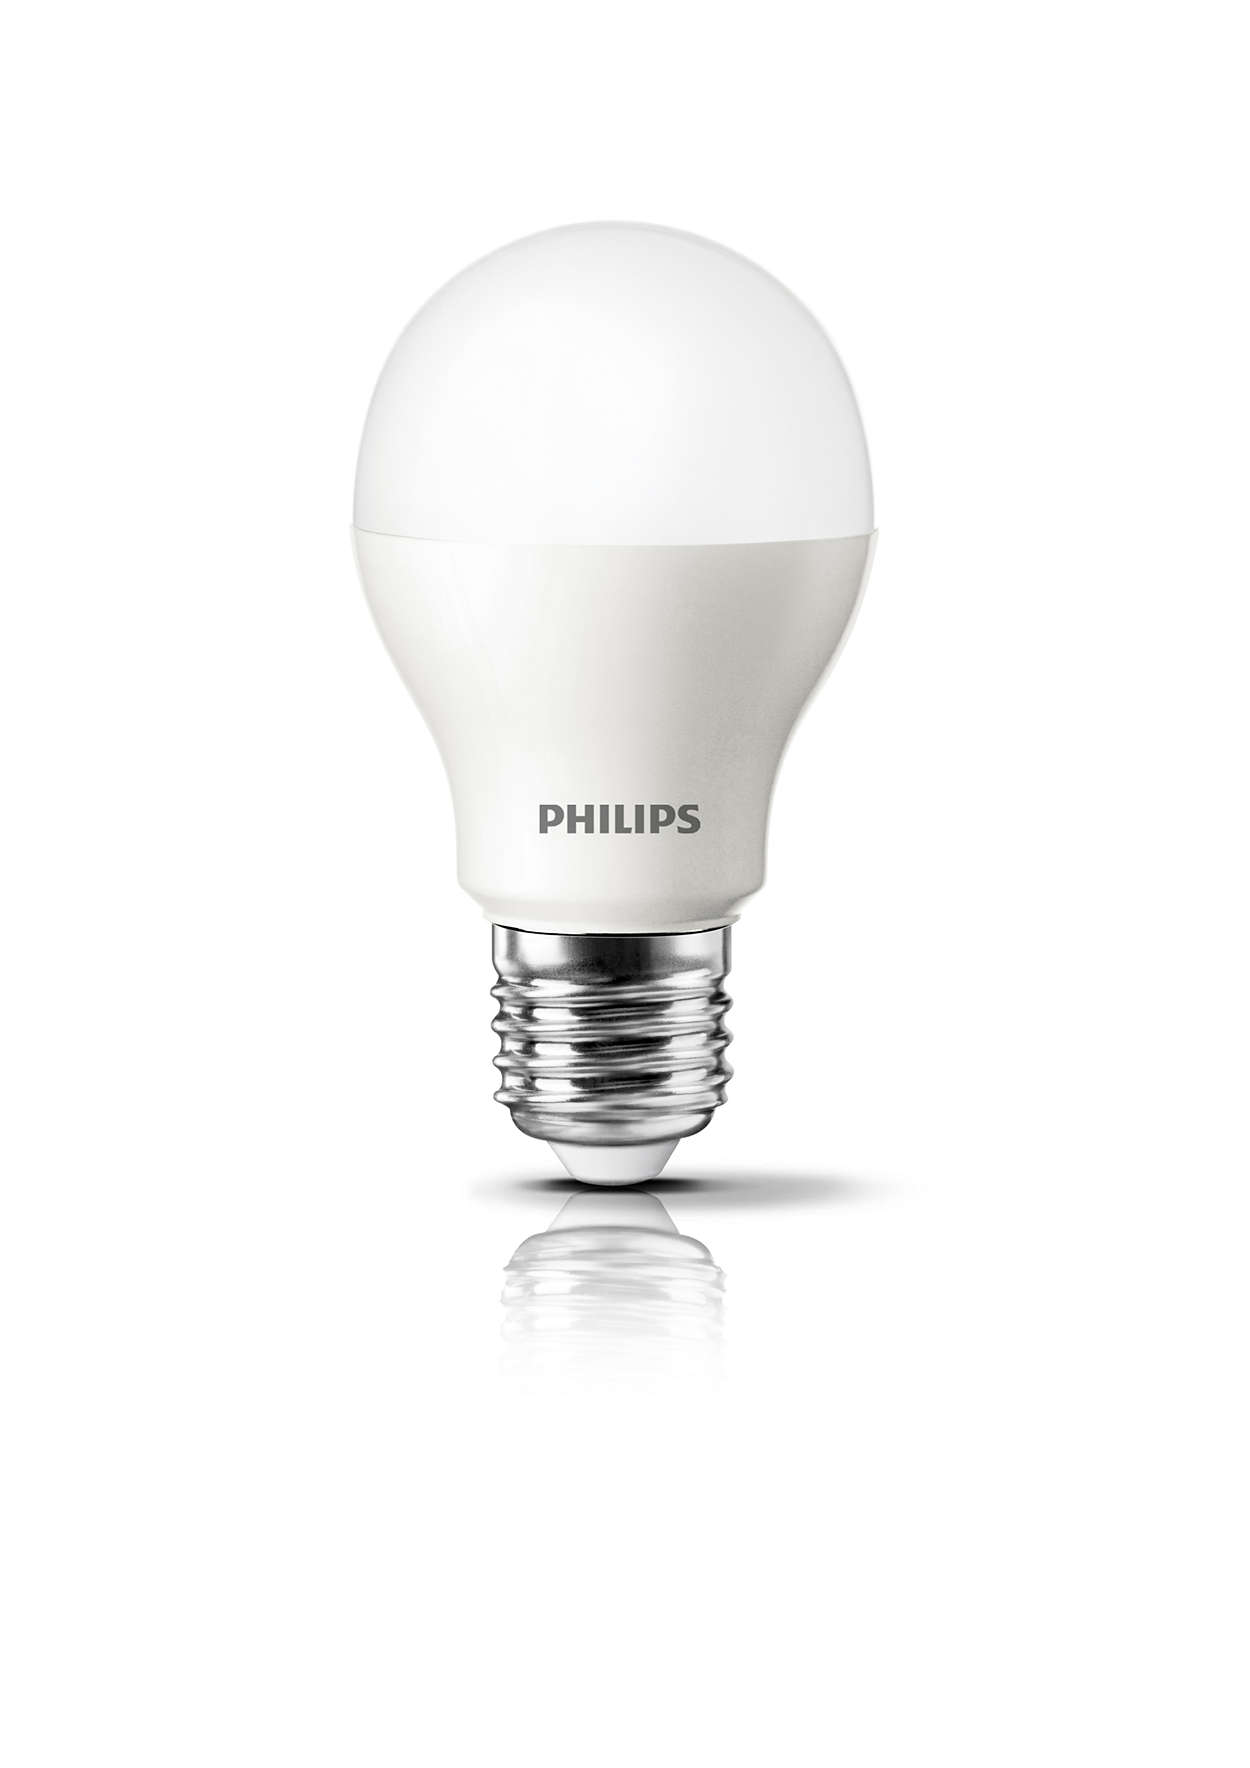 State-of-the-art LED for the home